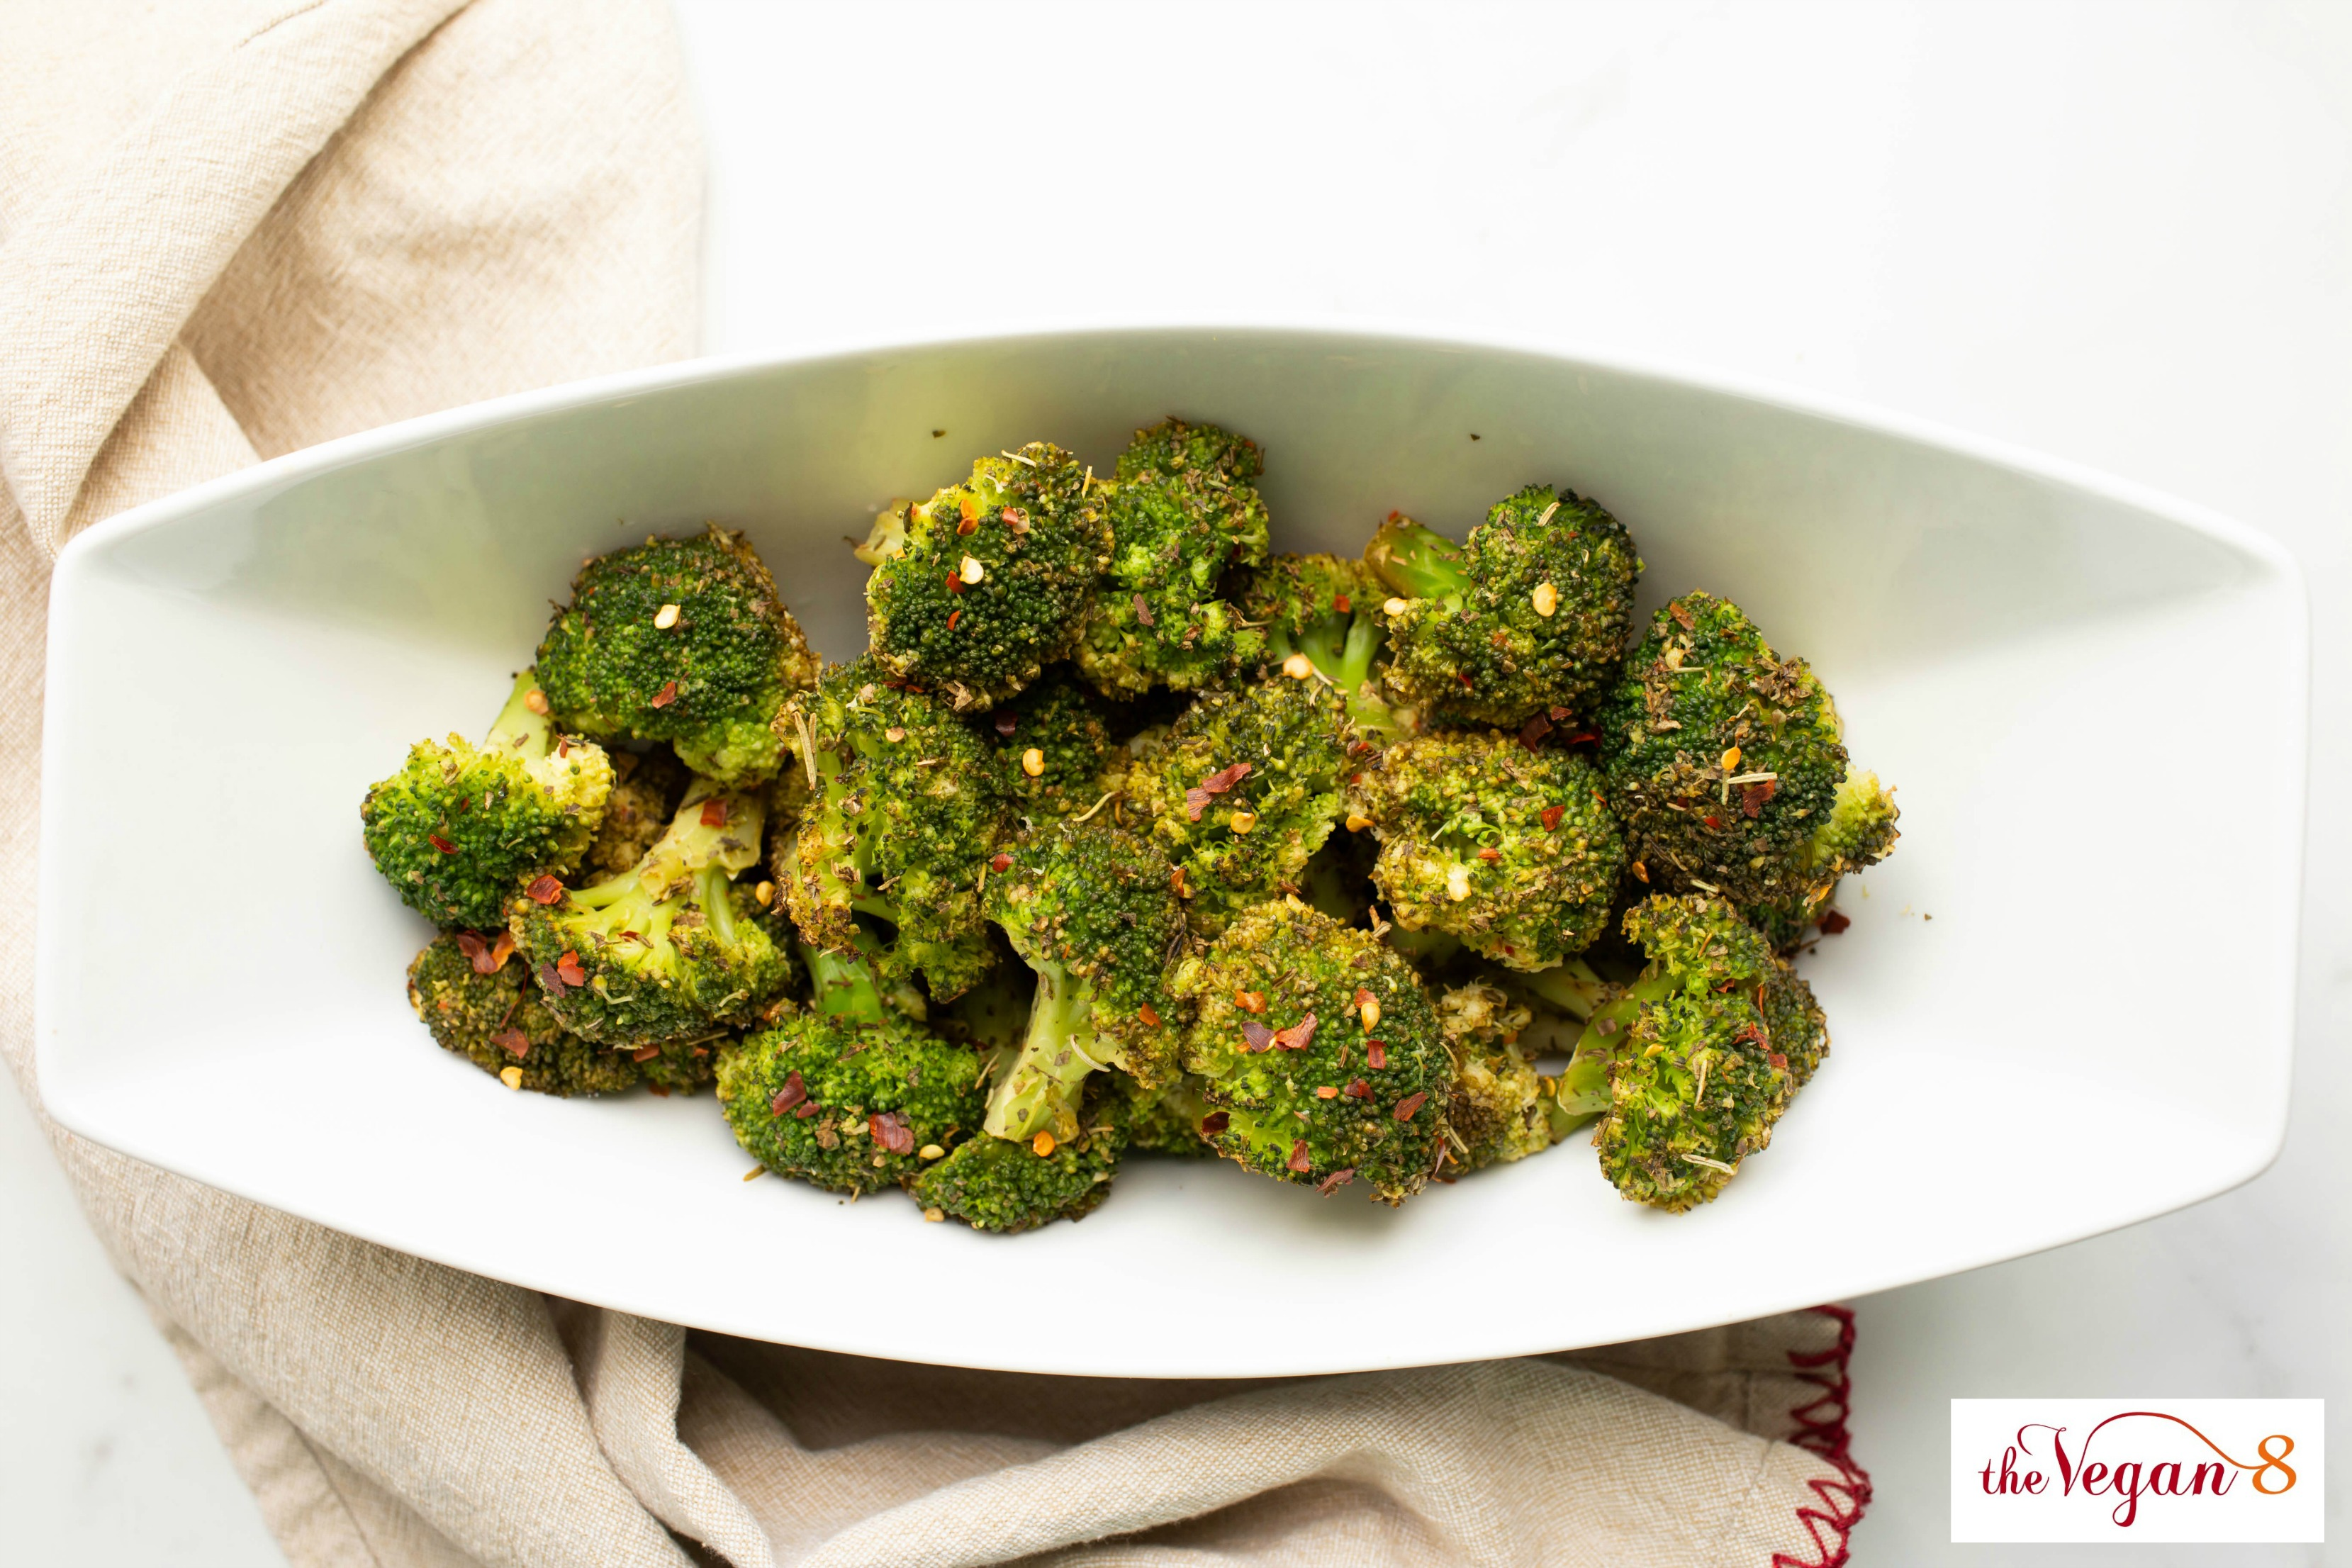 roasted broccoli with Italian spices in white bowl